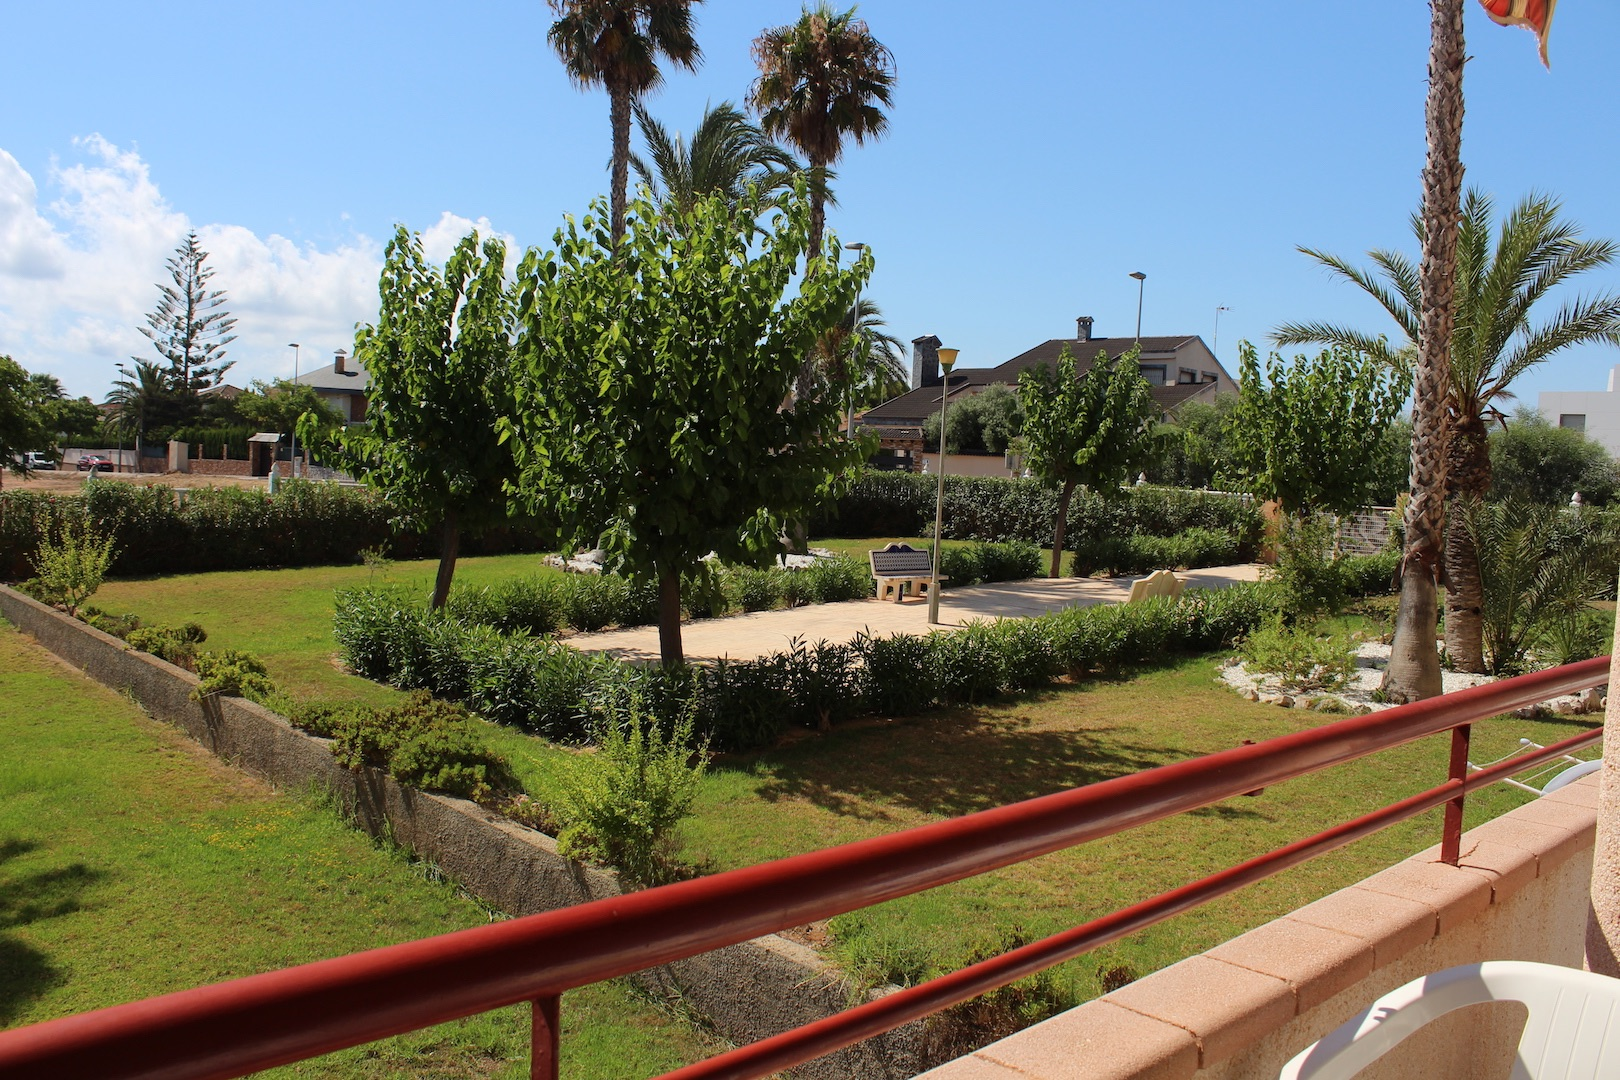 Apartment in Mil Palmeras, for sale